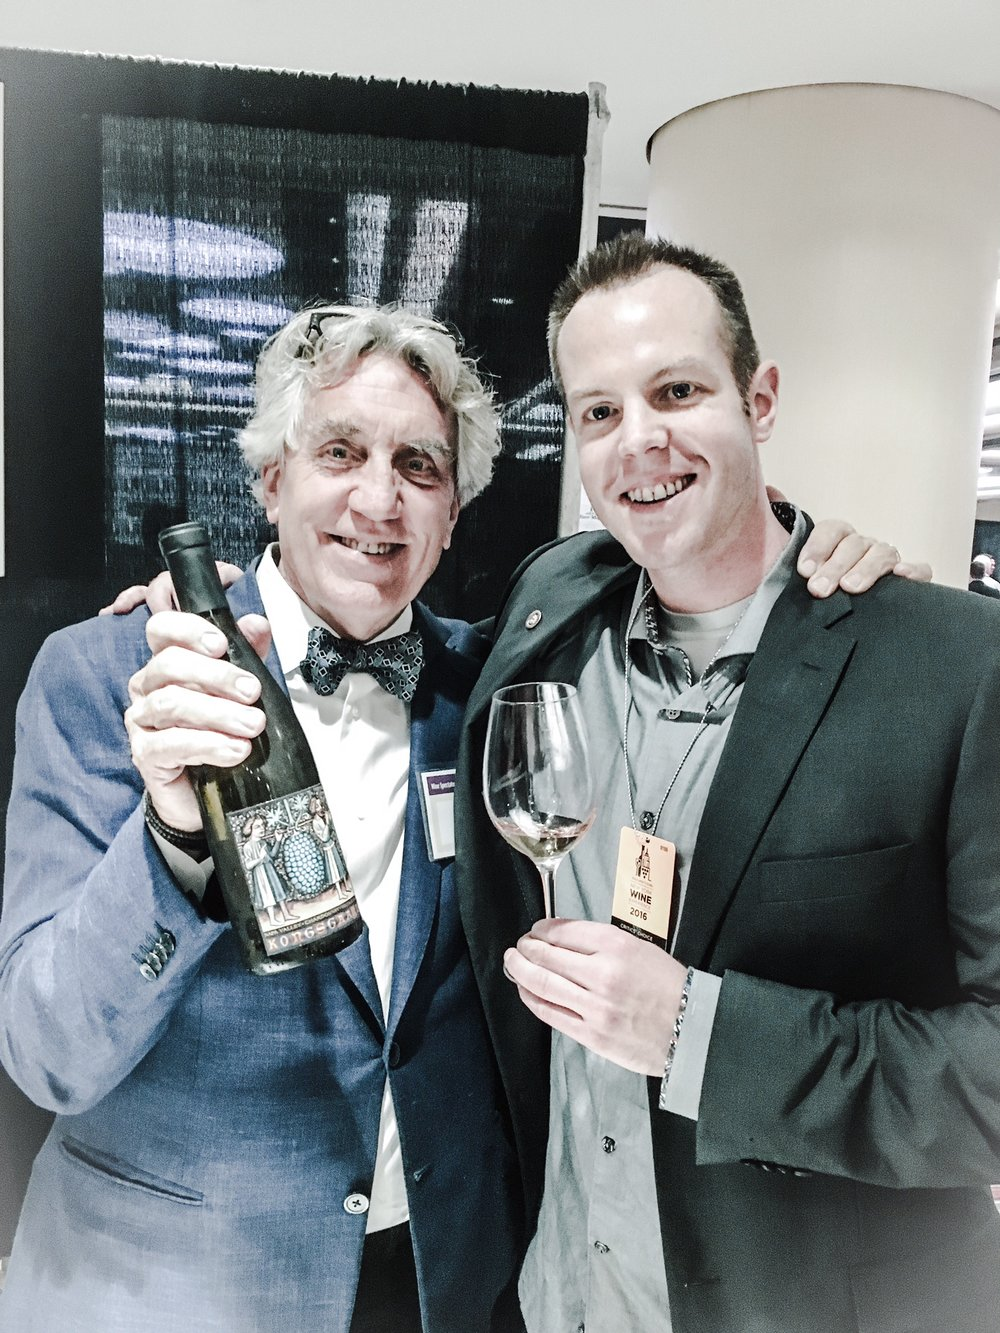 A few months back I had the wonderful chance to catch up with the man himself, John Kongsgaard, in person. He was just a delight to talk wine with.